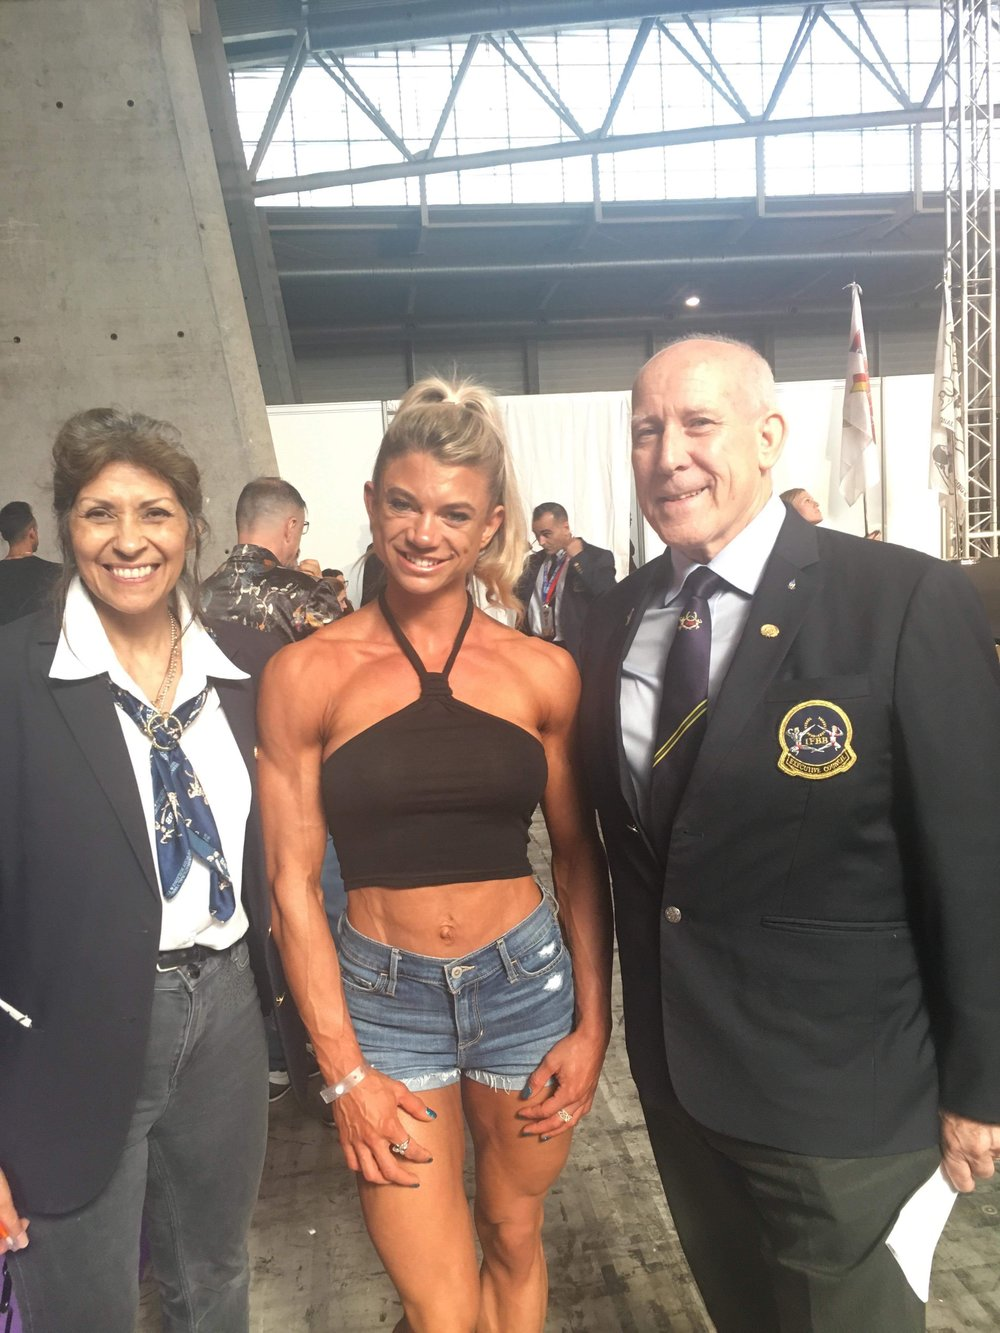 Silver medallist Kristie Sanderson with Bill and Wanda Tierney of the UKBFF.